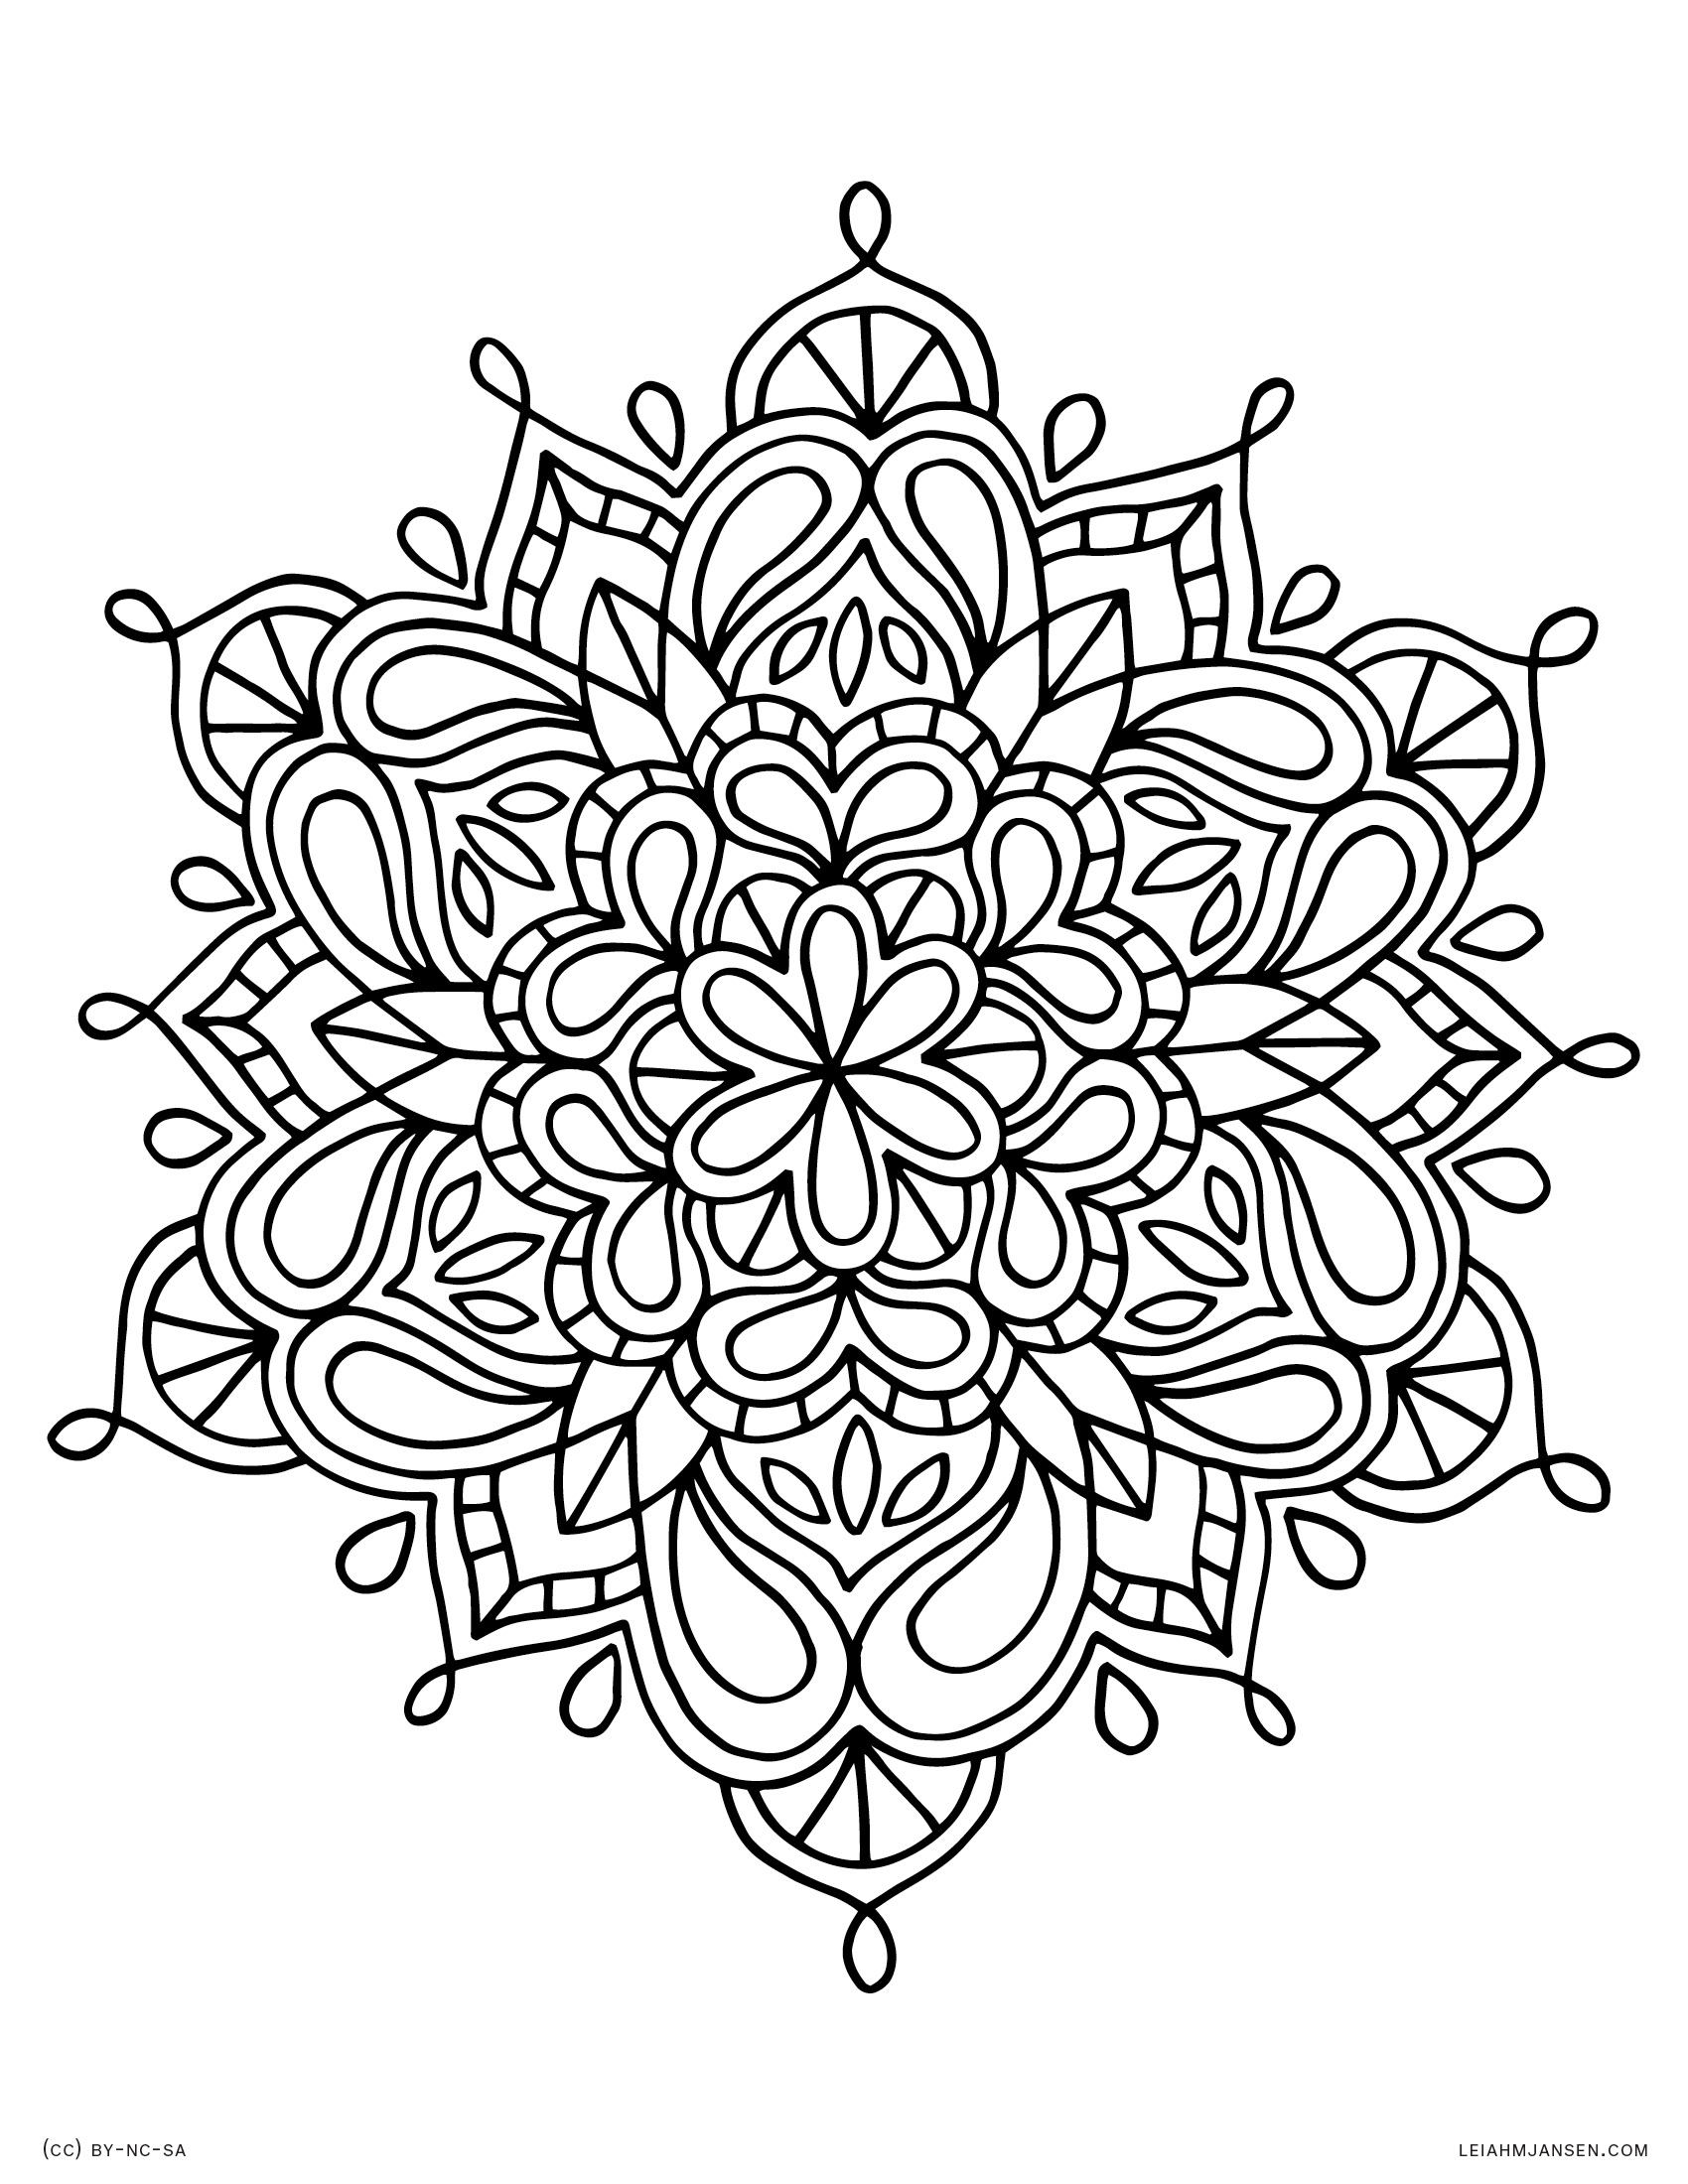 free printable coloring pages mandala designs | Coloring Pages